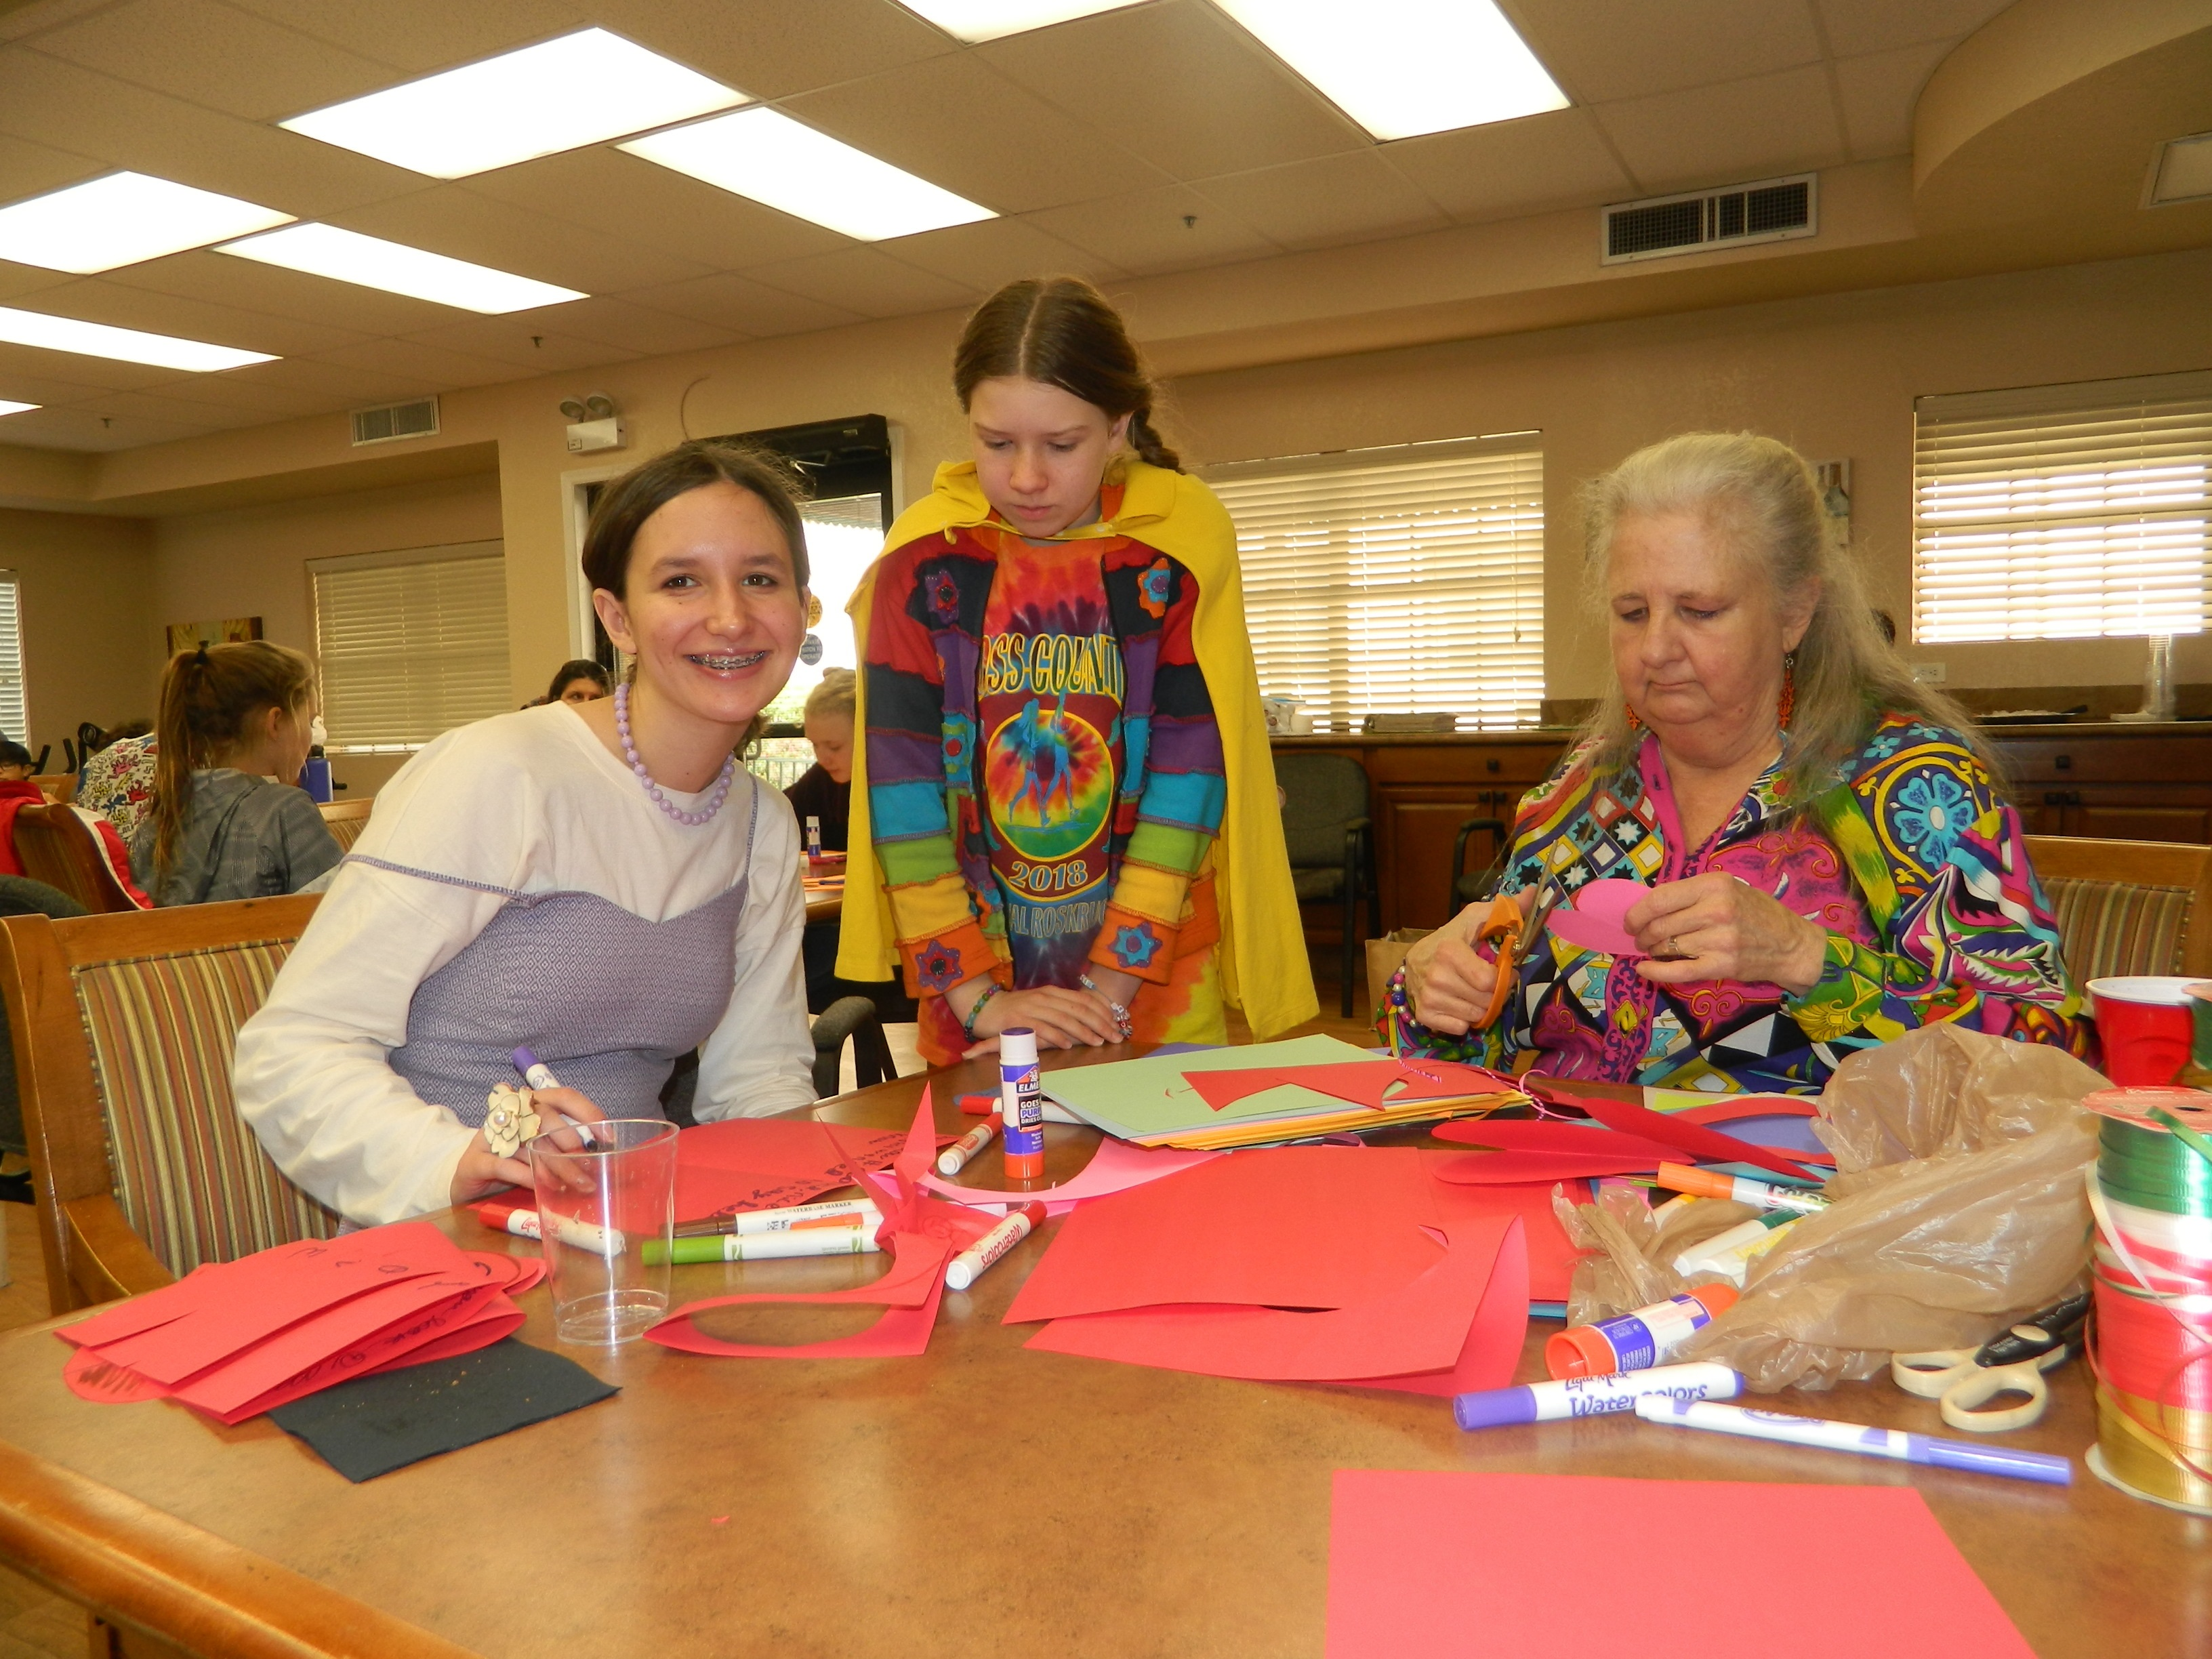 Teacher sitting with two students making cards for the elderly